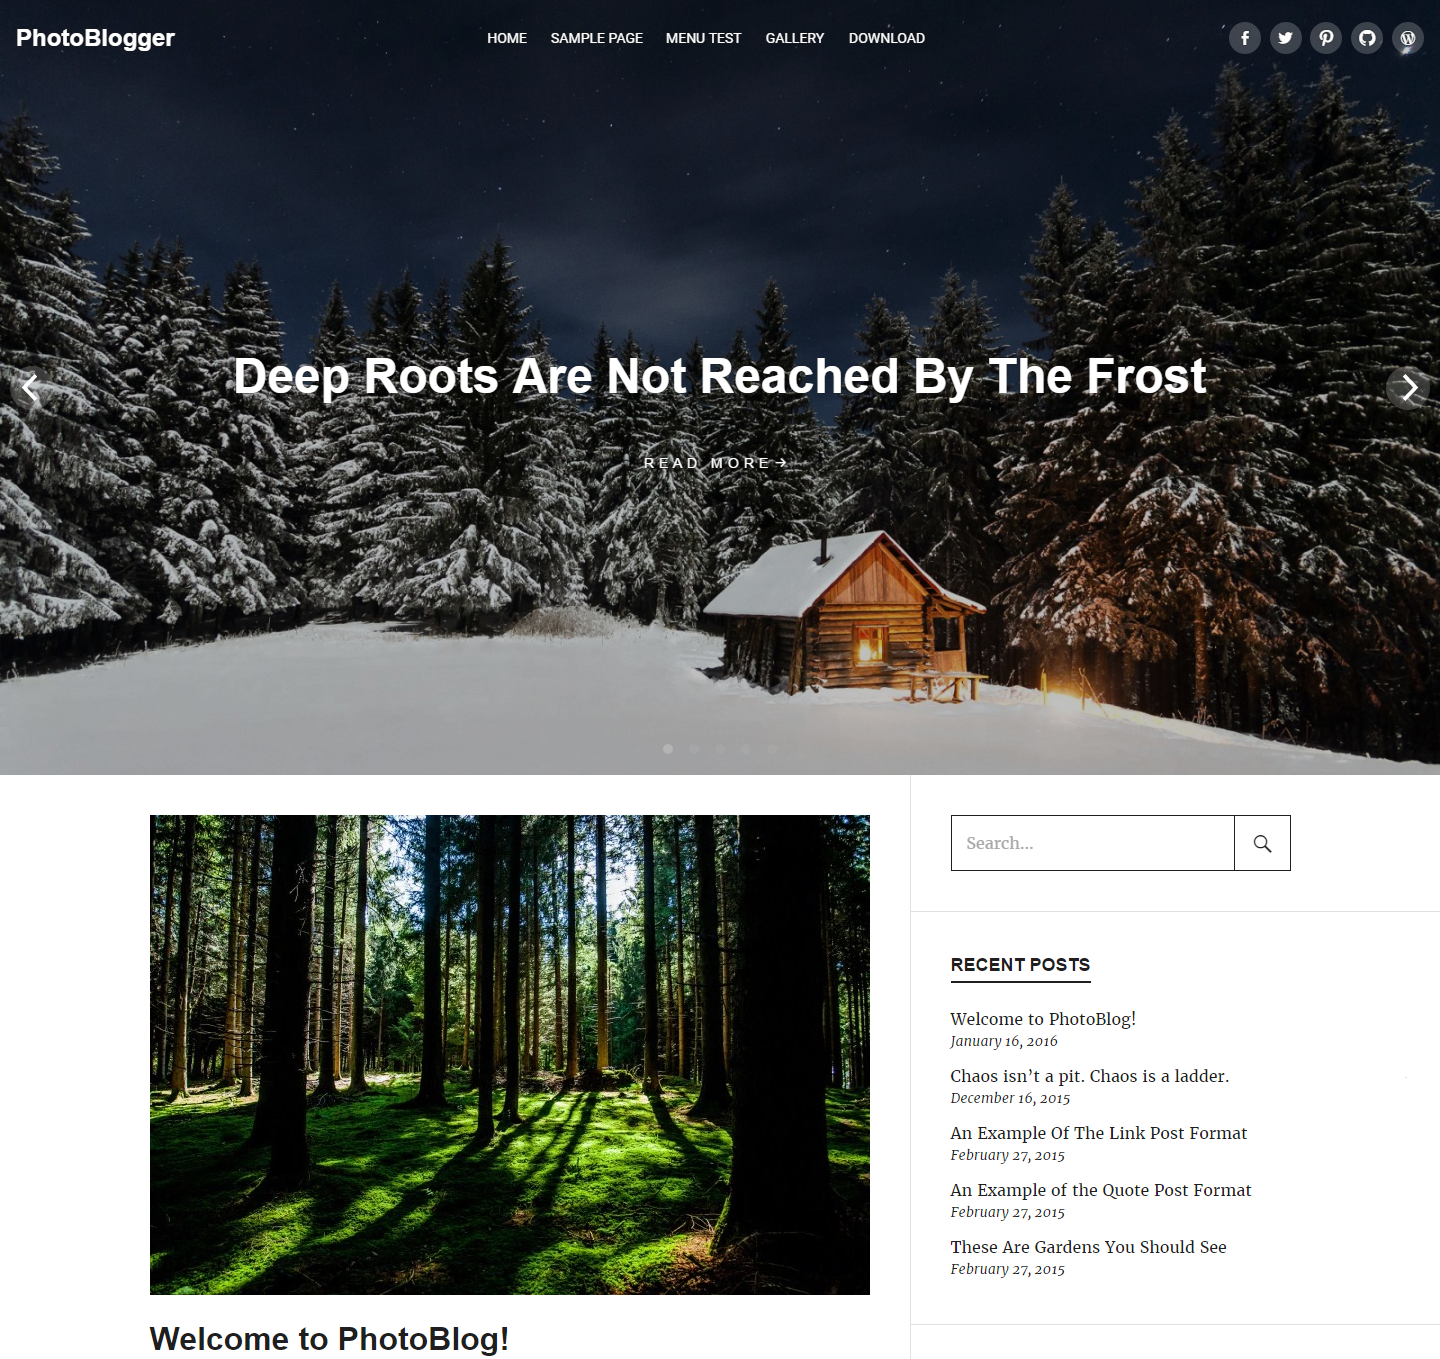 photoblogger-free-wordpress-theme